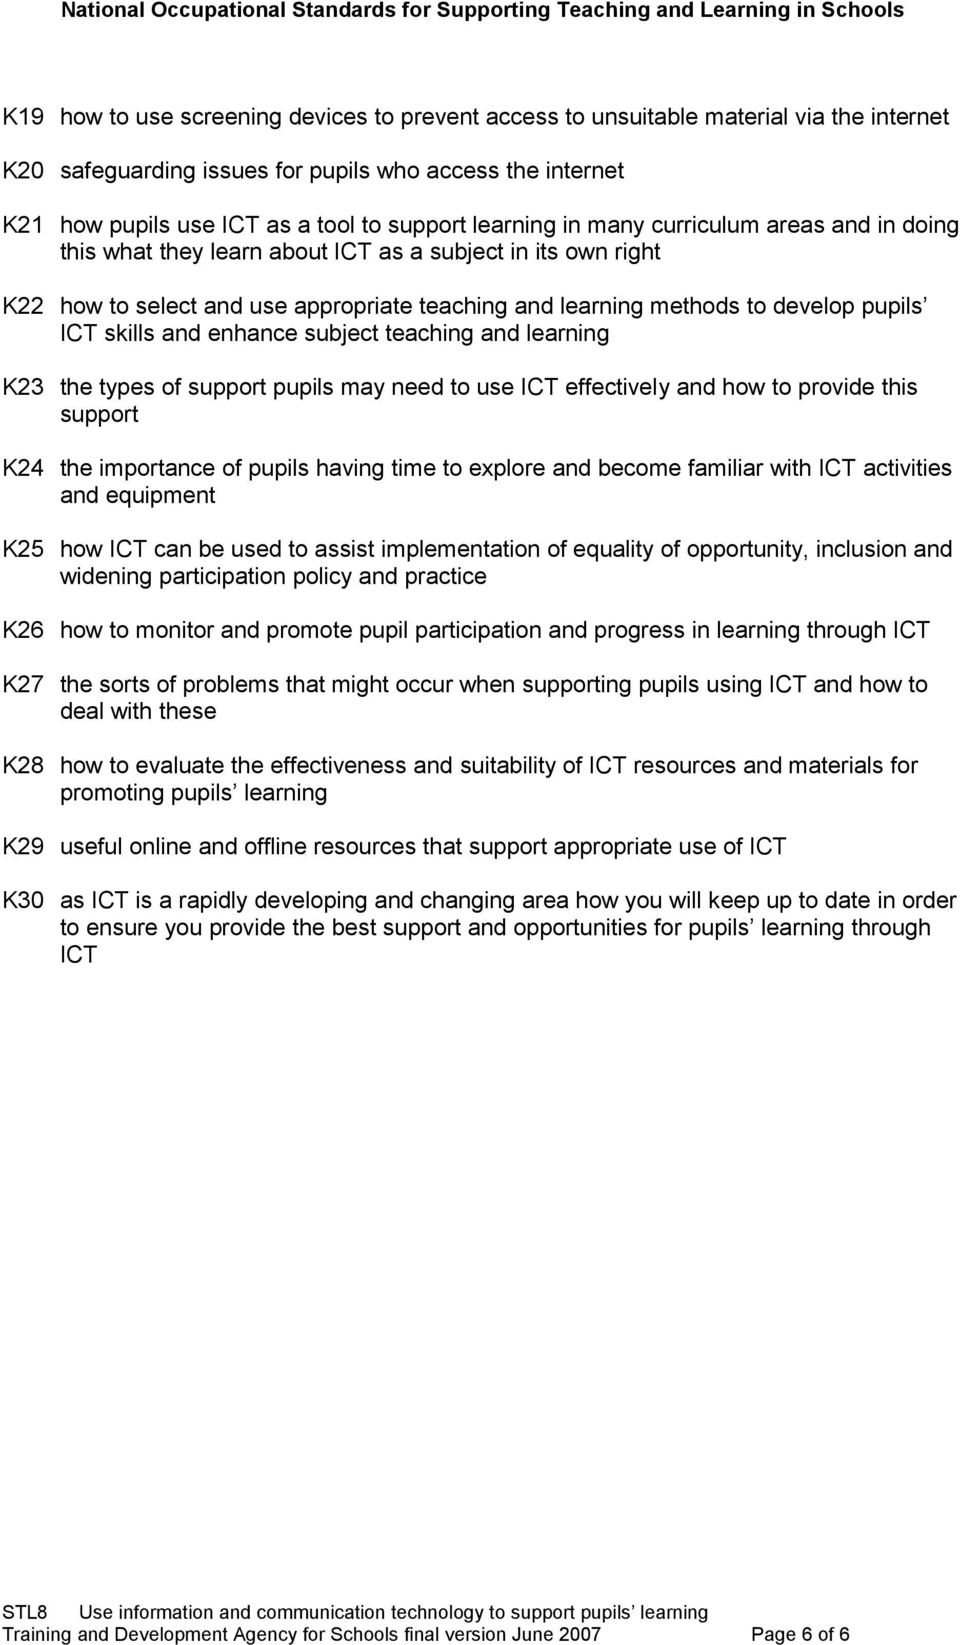 skills and enhance subject teaching and learning K23 the types of support pupils may need to use ICT effectively and how to provide this support K24 the importance of pupils having time to explore